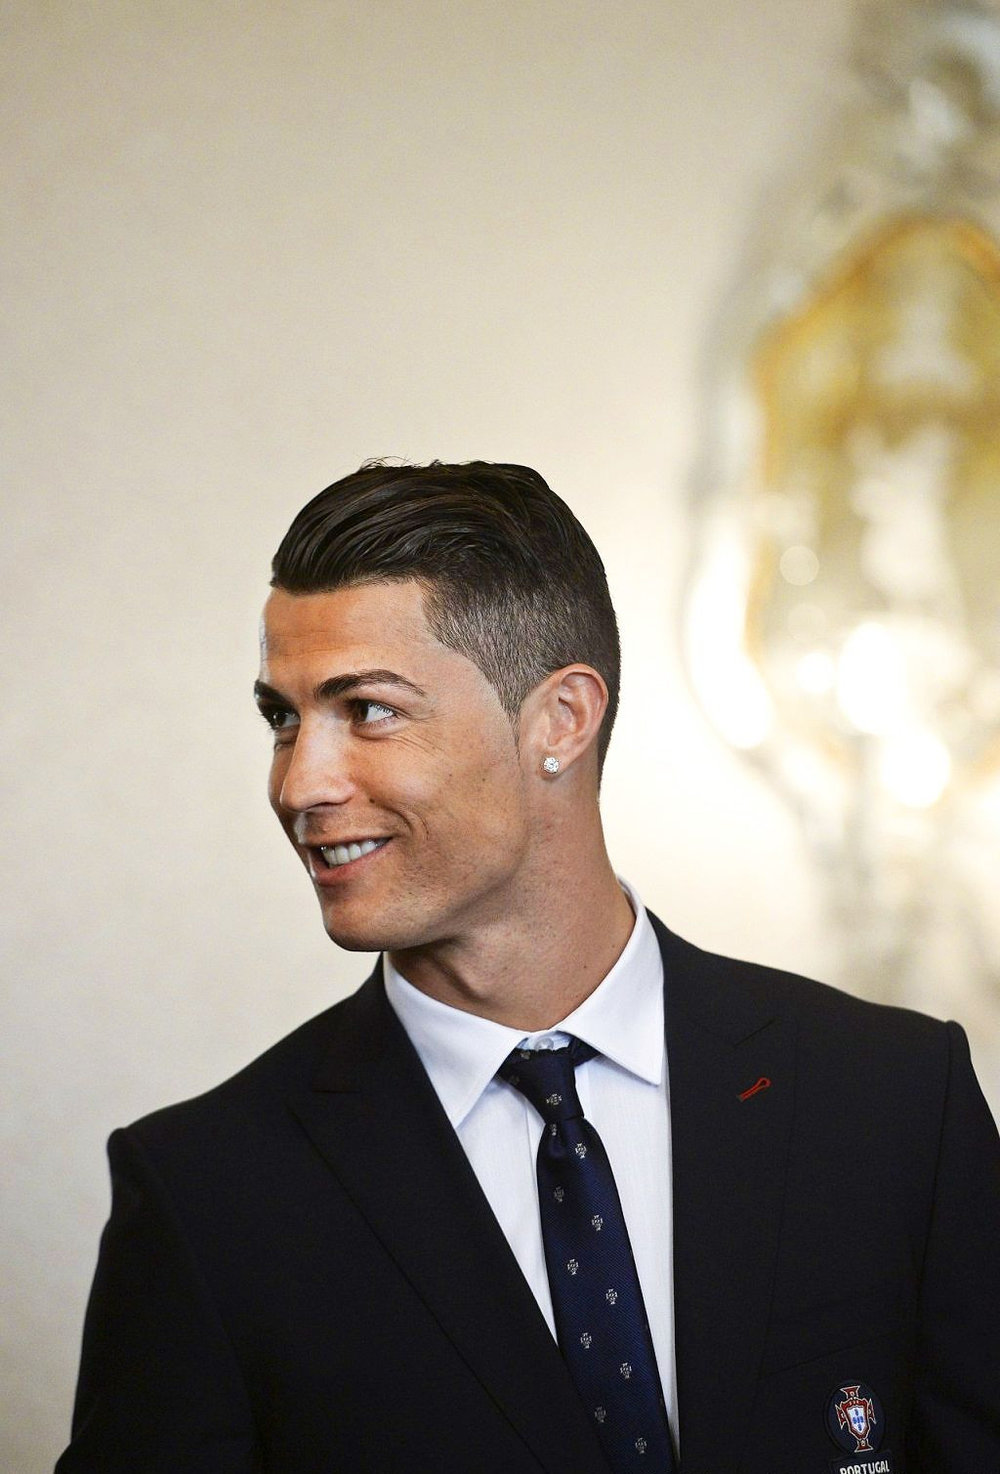 cr7-hairstyle-2017-beautiful-cristiano-ronaldo-mystyle-my-style-love-pinterest-of-cr7-hairstyle-2017.jpg